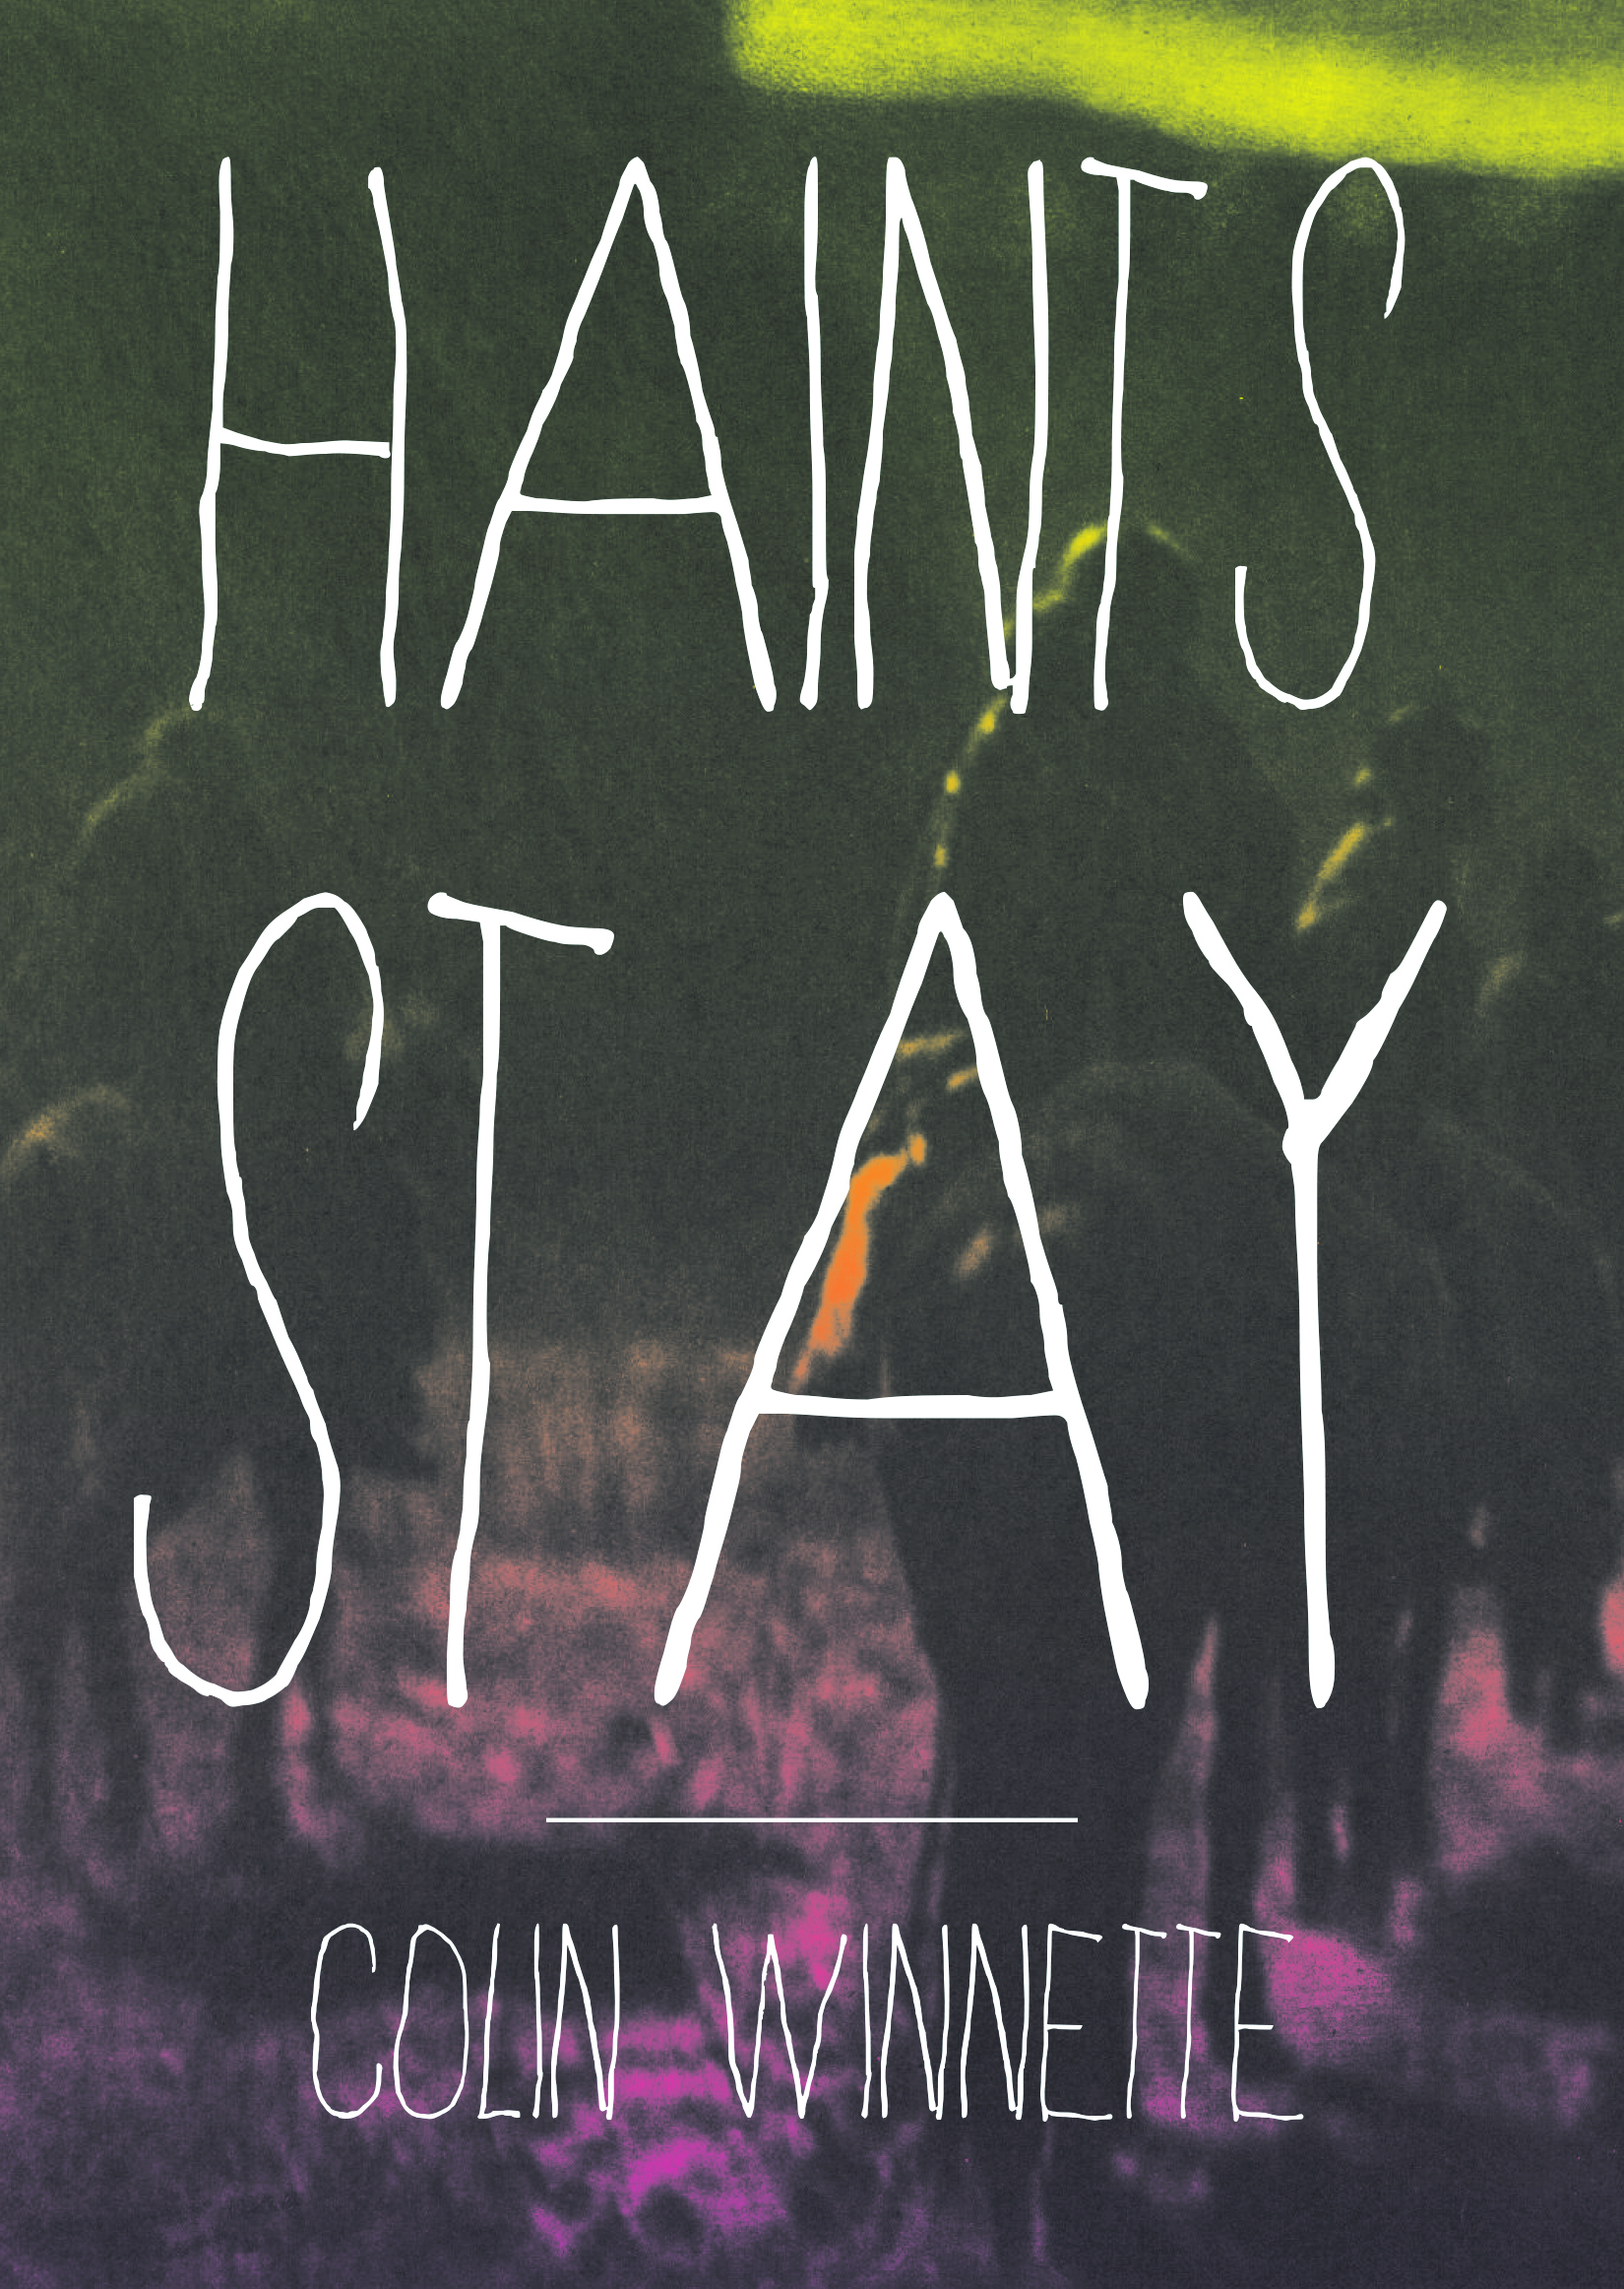 WINNETTE-Haints-Stay-cov